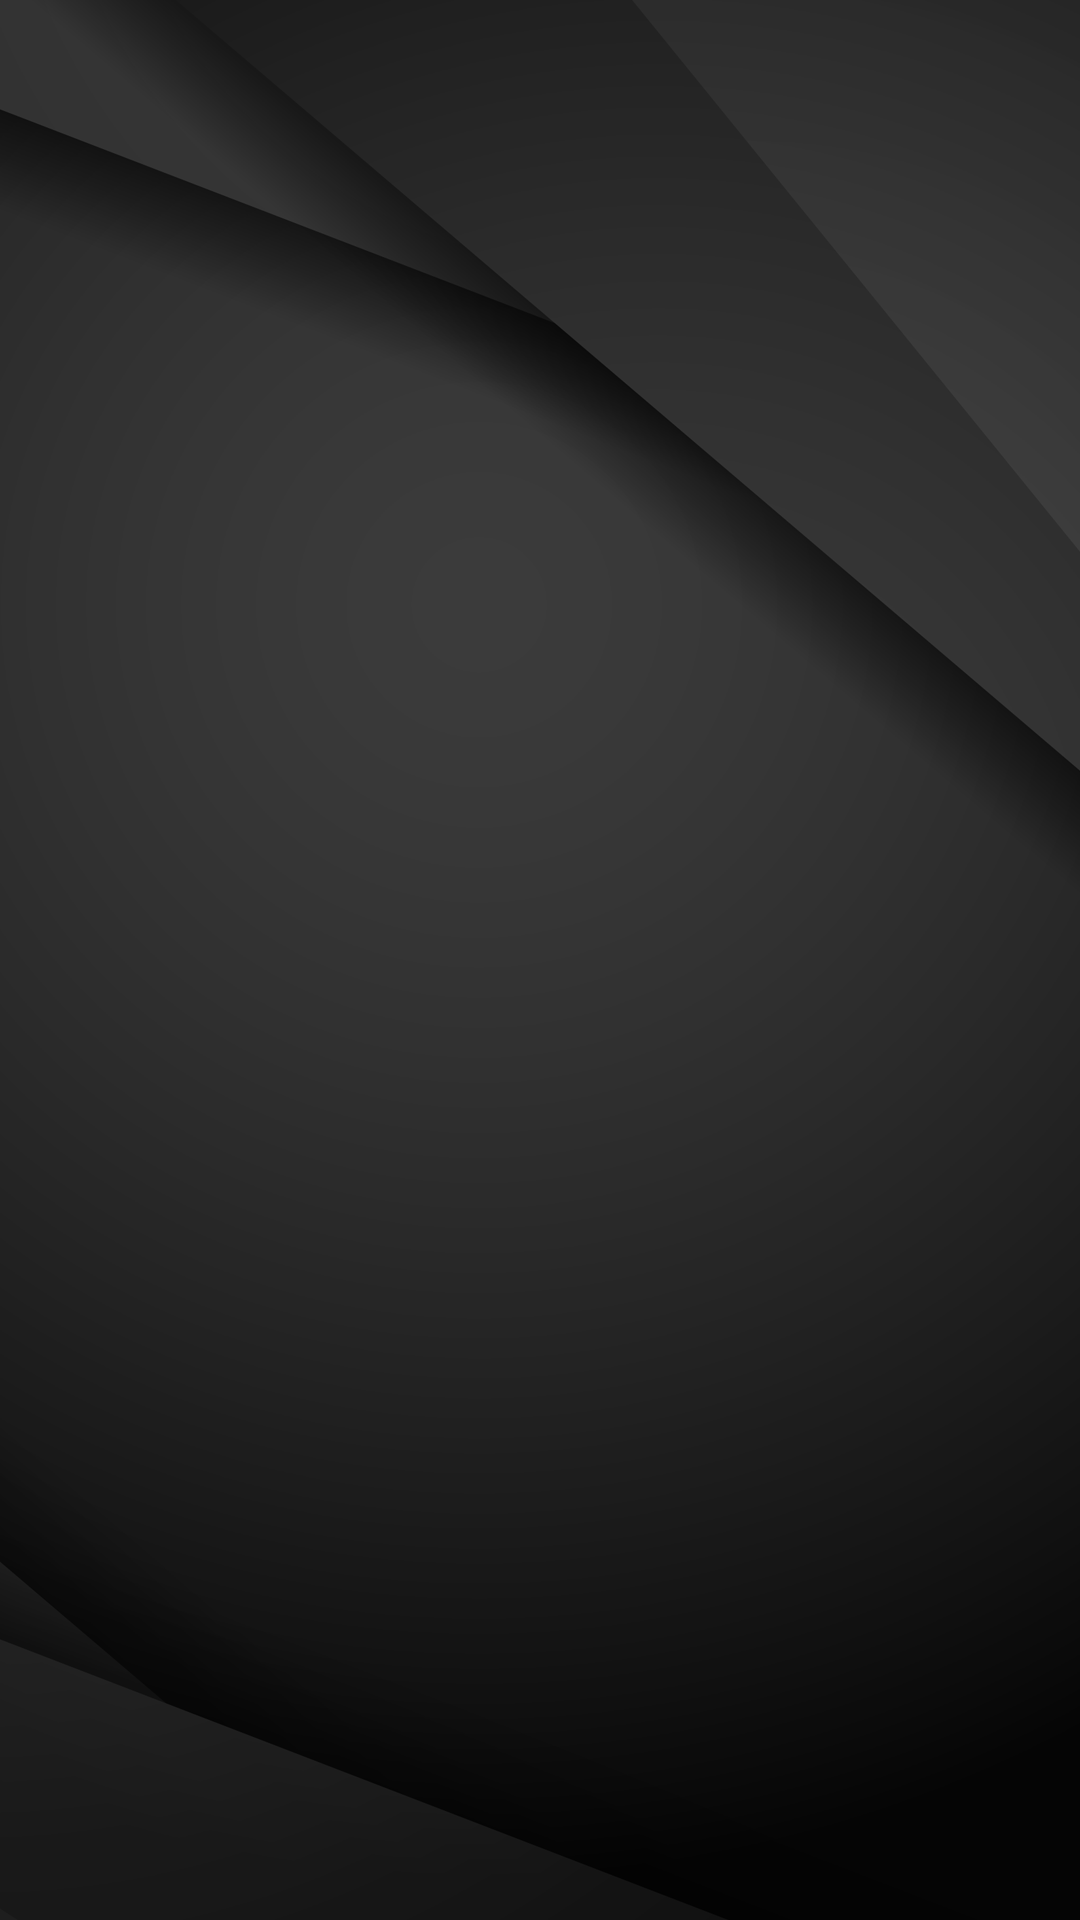 Download Our HD Dark Abstract Wallpaper For Android Phones ...